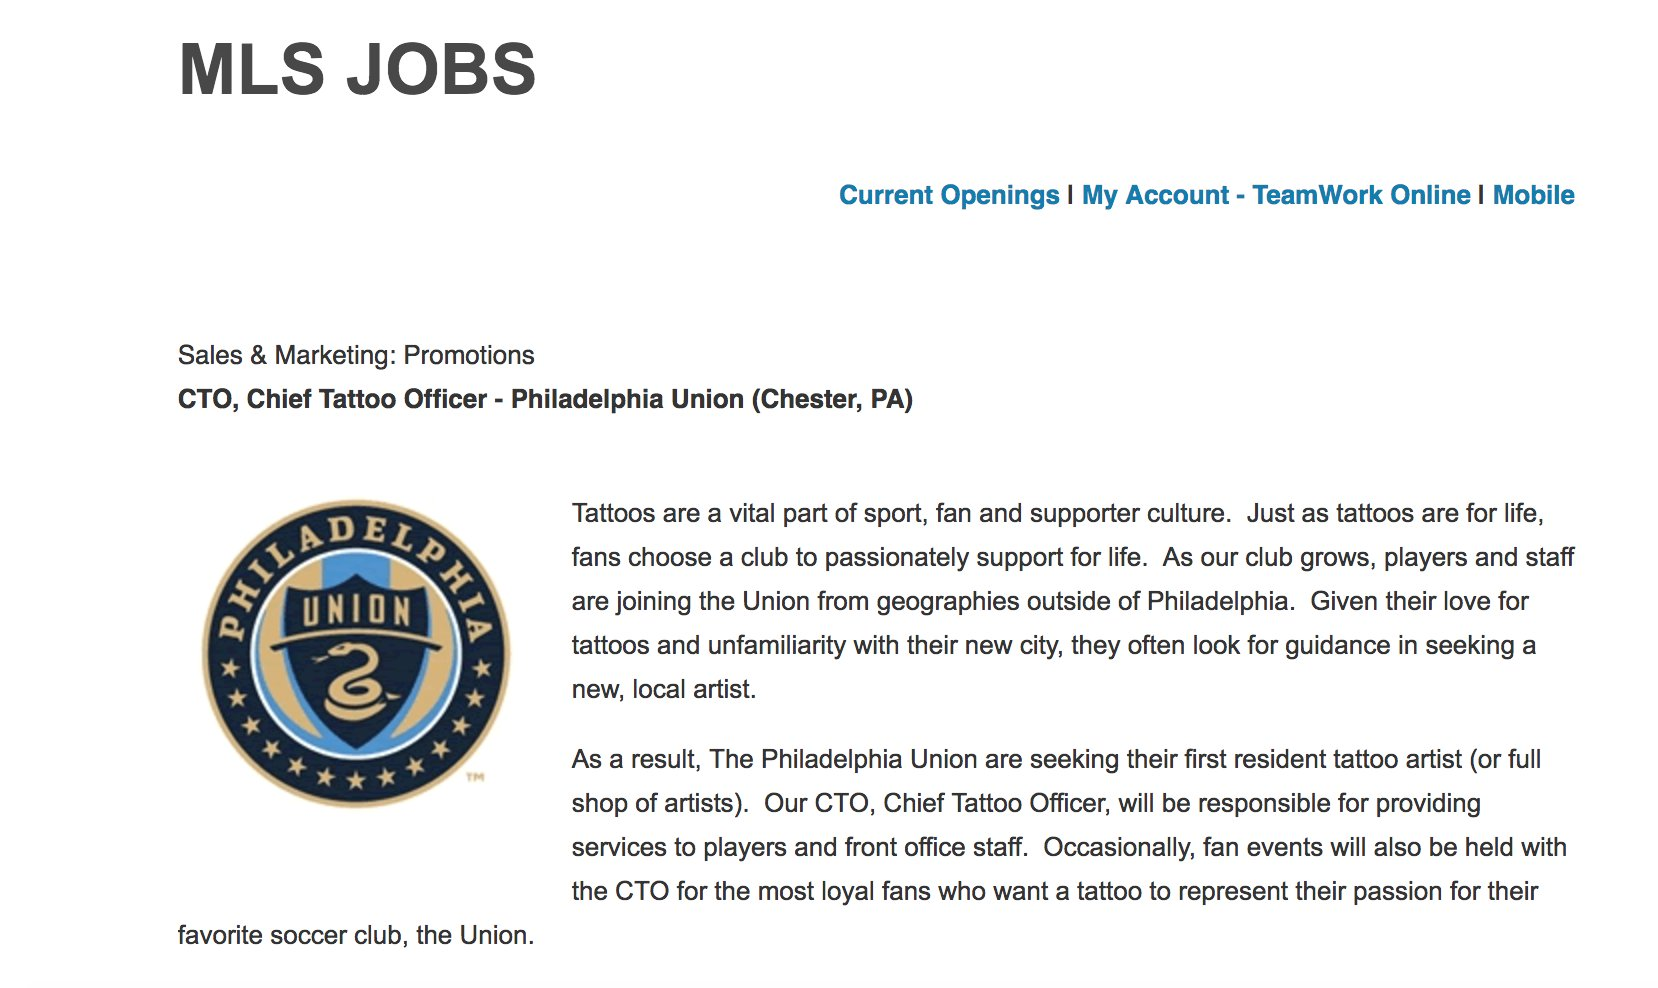 Graham Ruthven On Twitter So The At Philaunion Are Looking For A